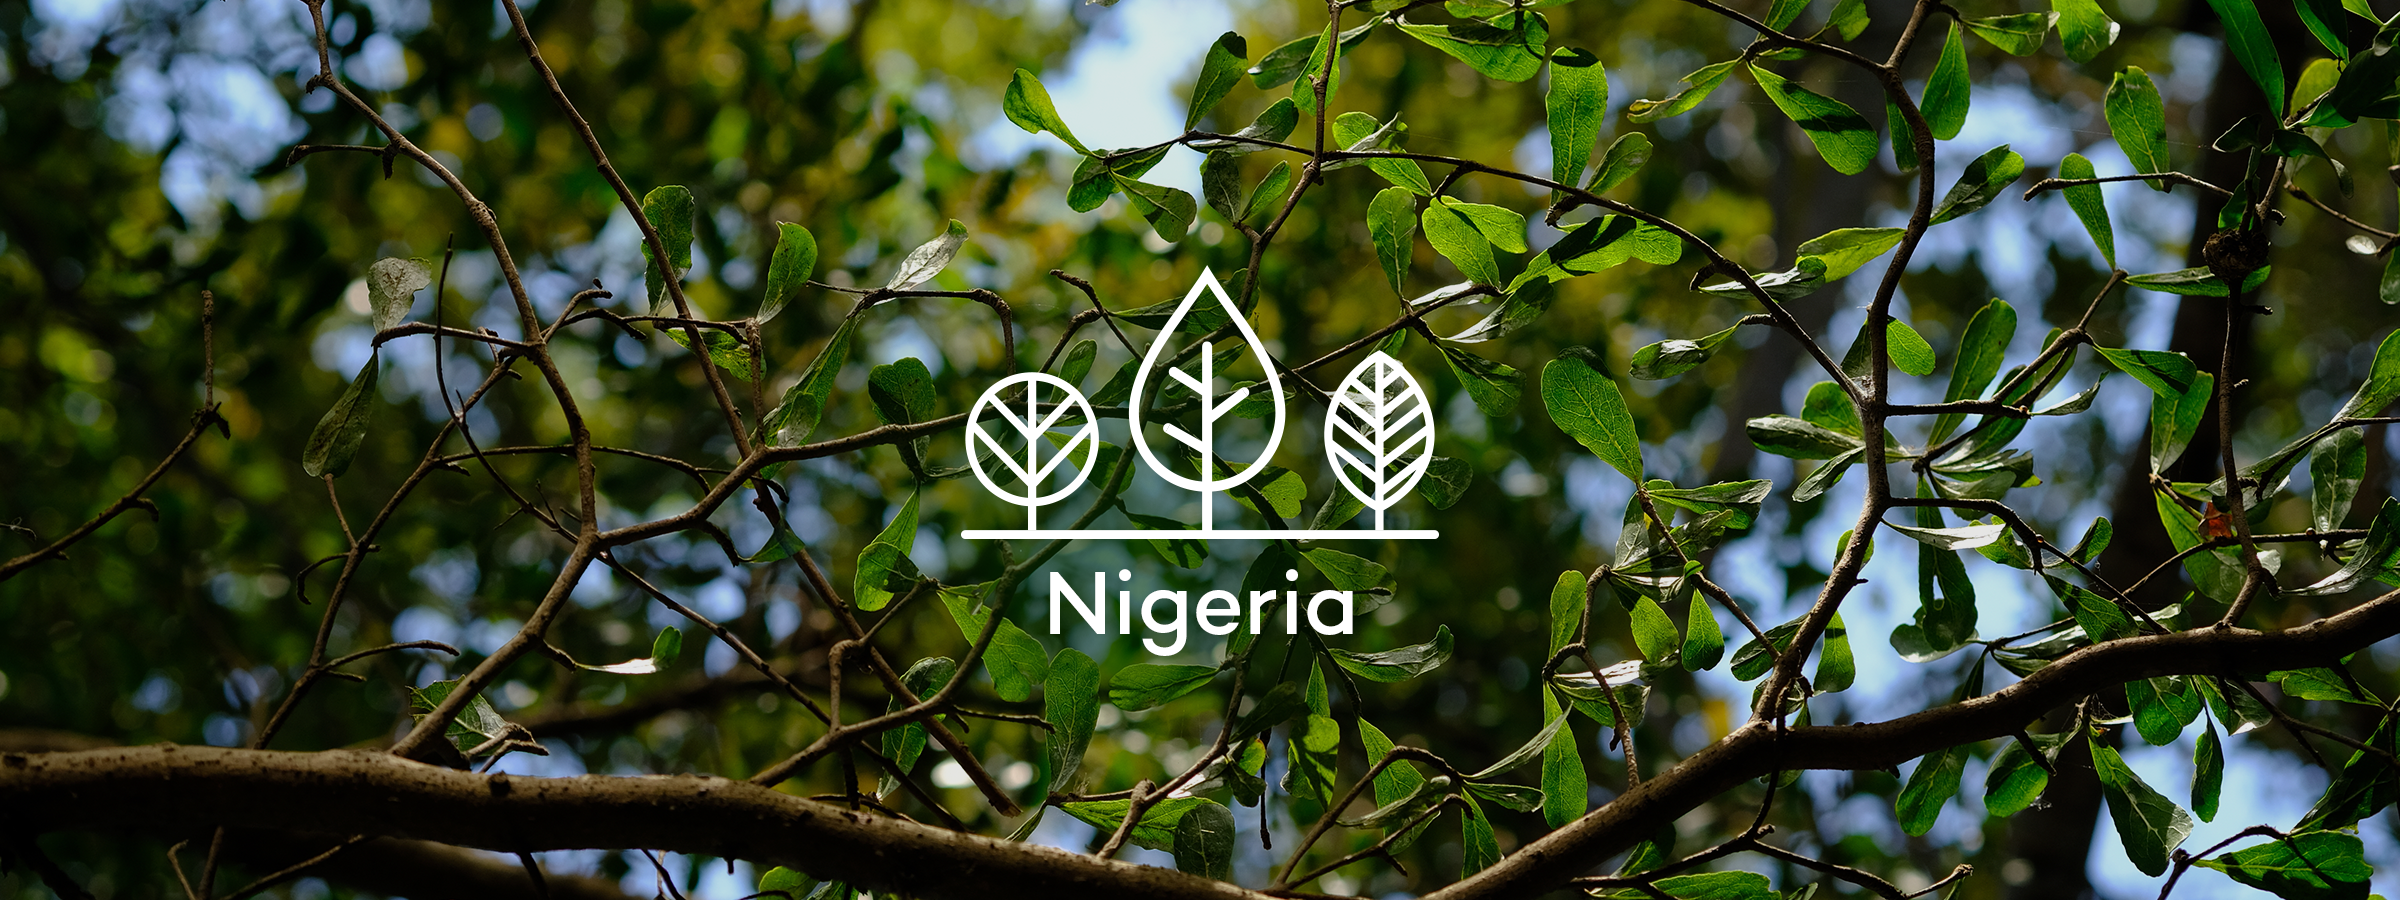 Your trees in Nigeria